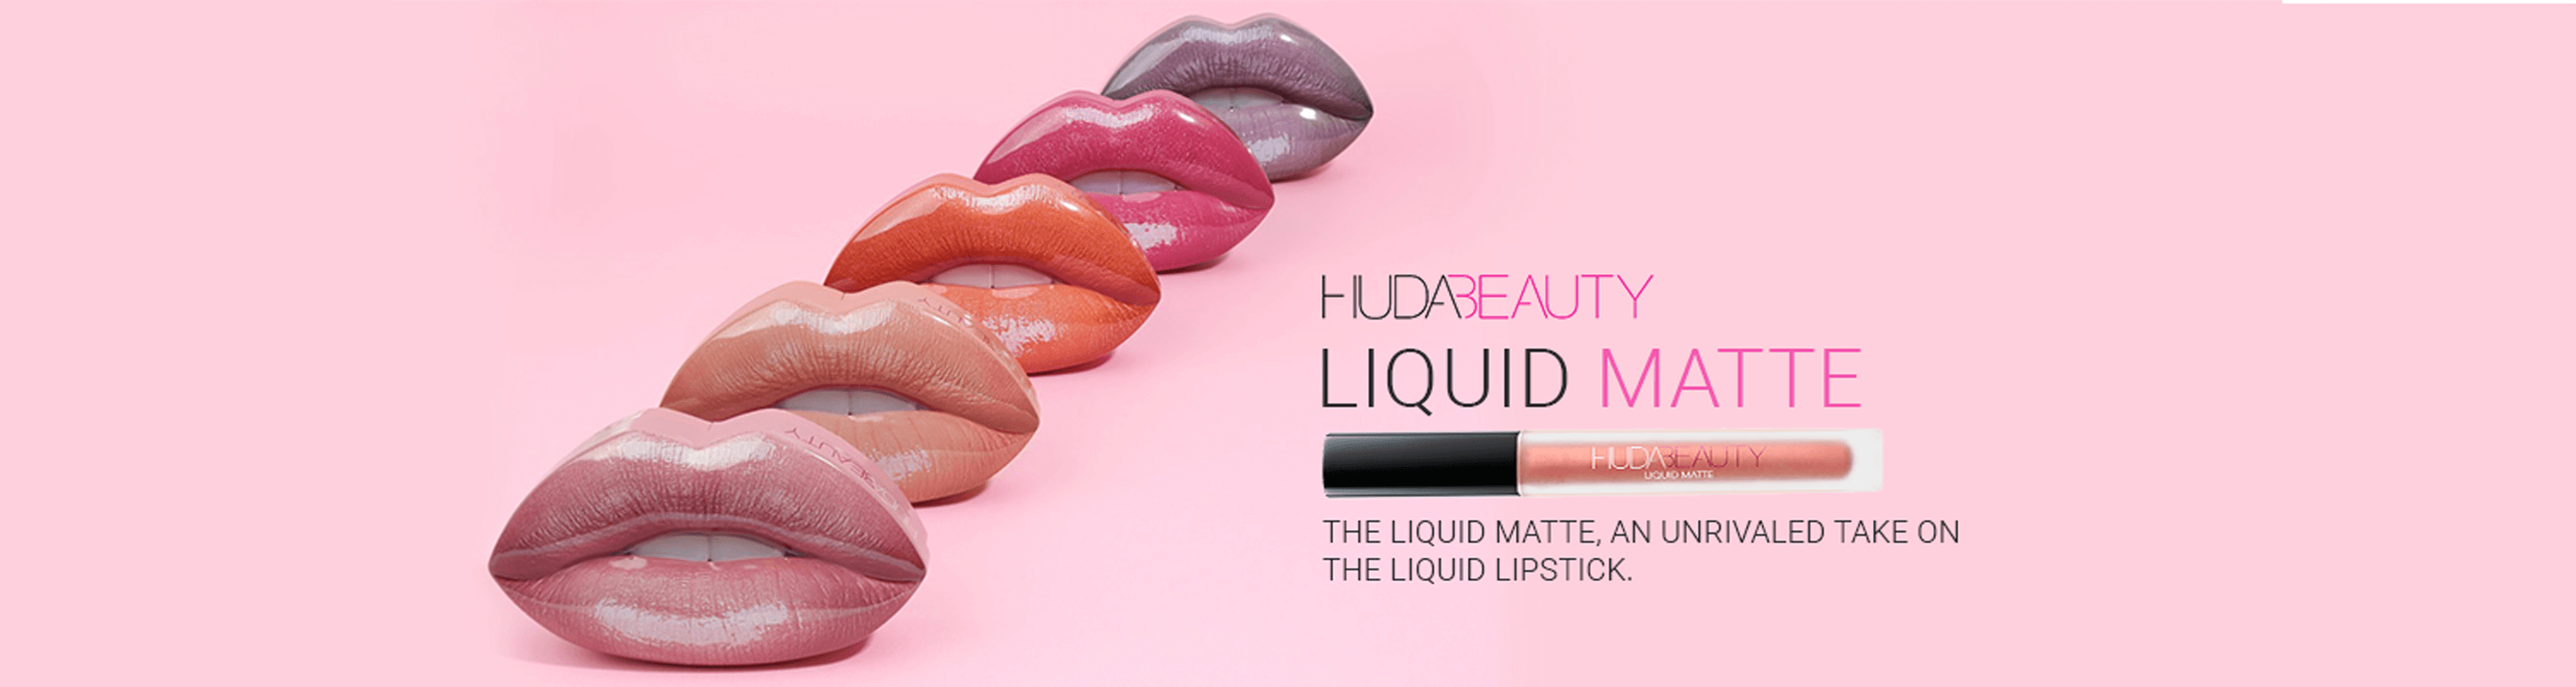 Huda Beauty Liquid Matte - Lipstick